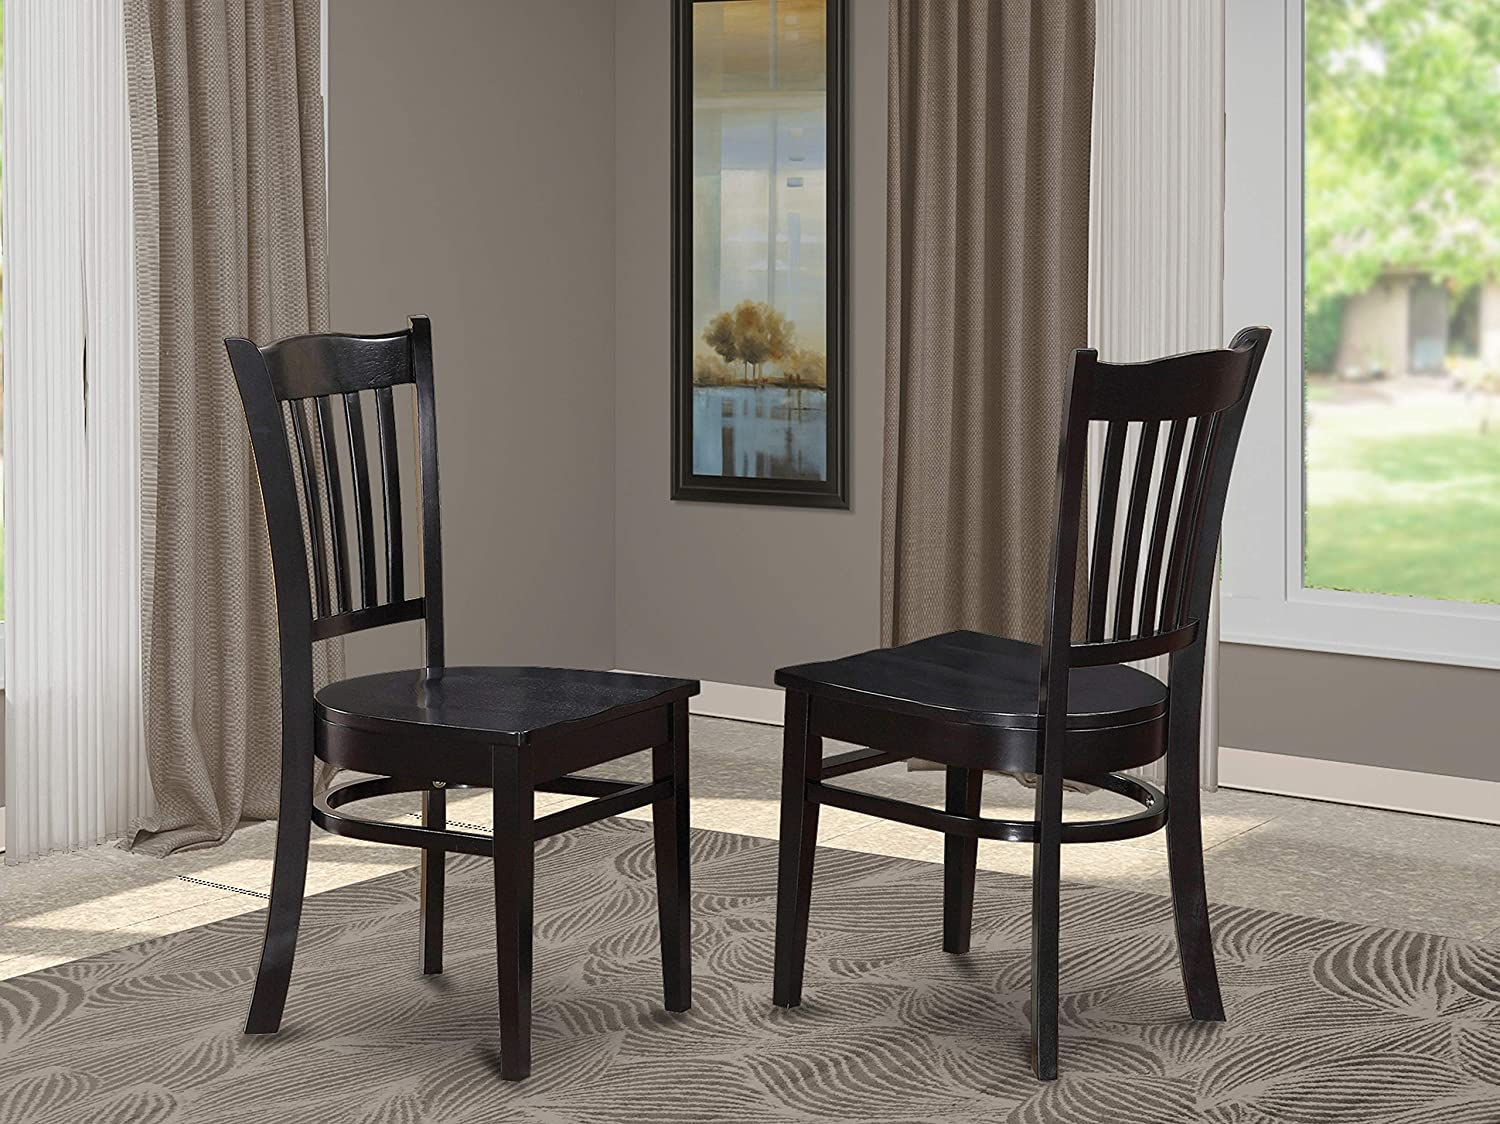 East West Furniture Groton Dining Chairs Set Of 2 Hardwood Seat And Black Solid Wood Frame Kitchen Chairs Chairs